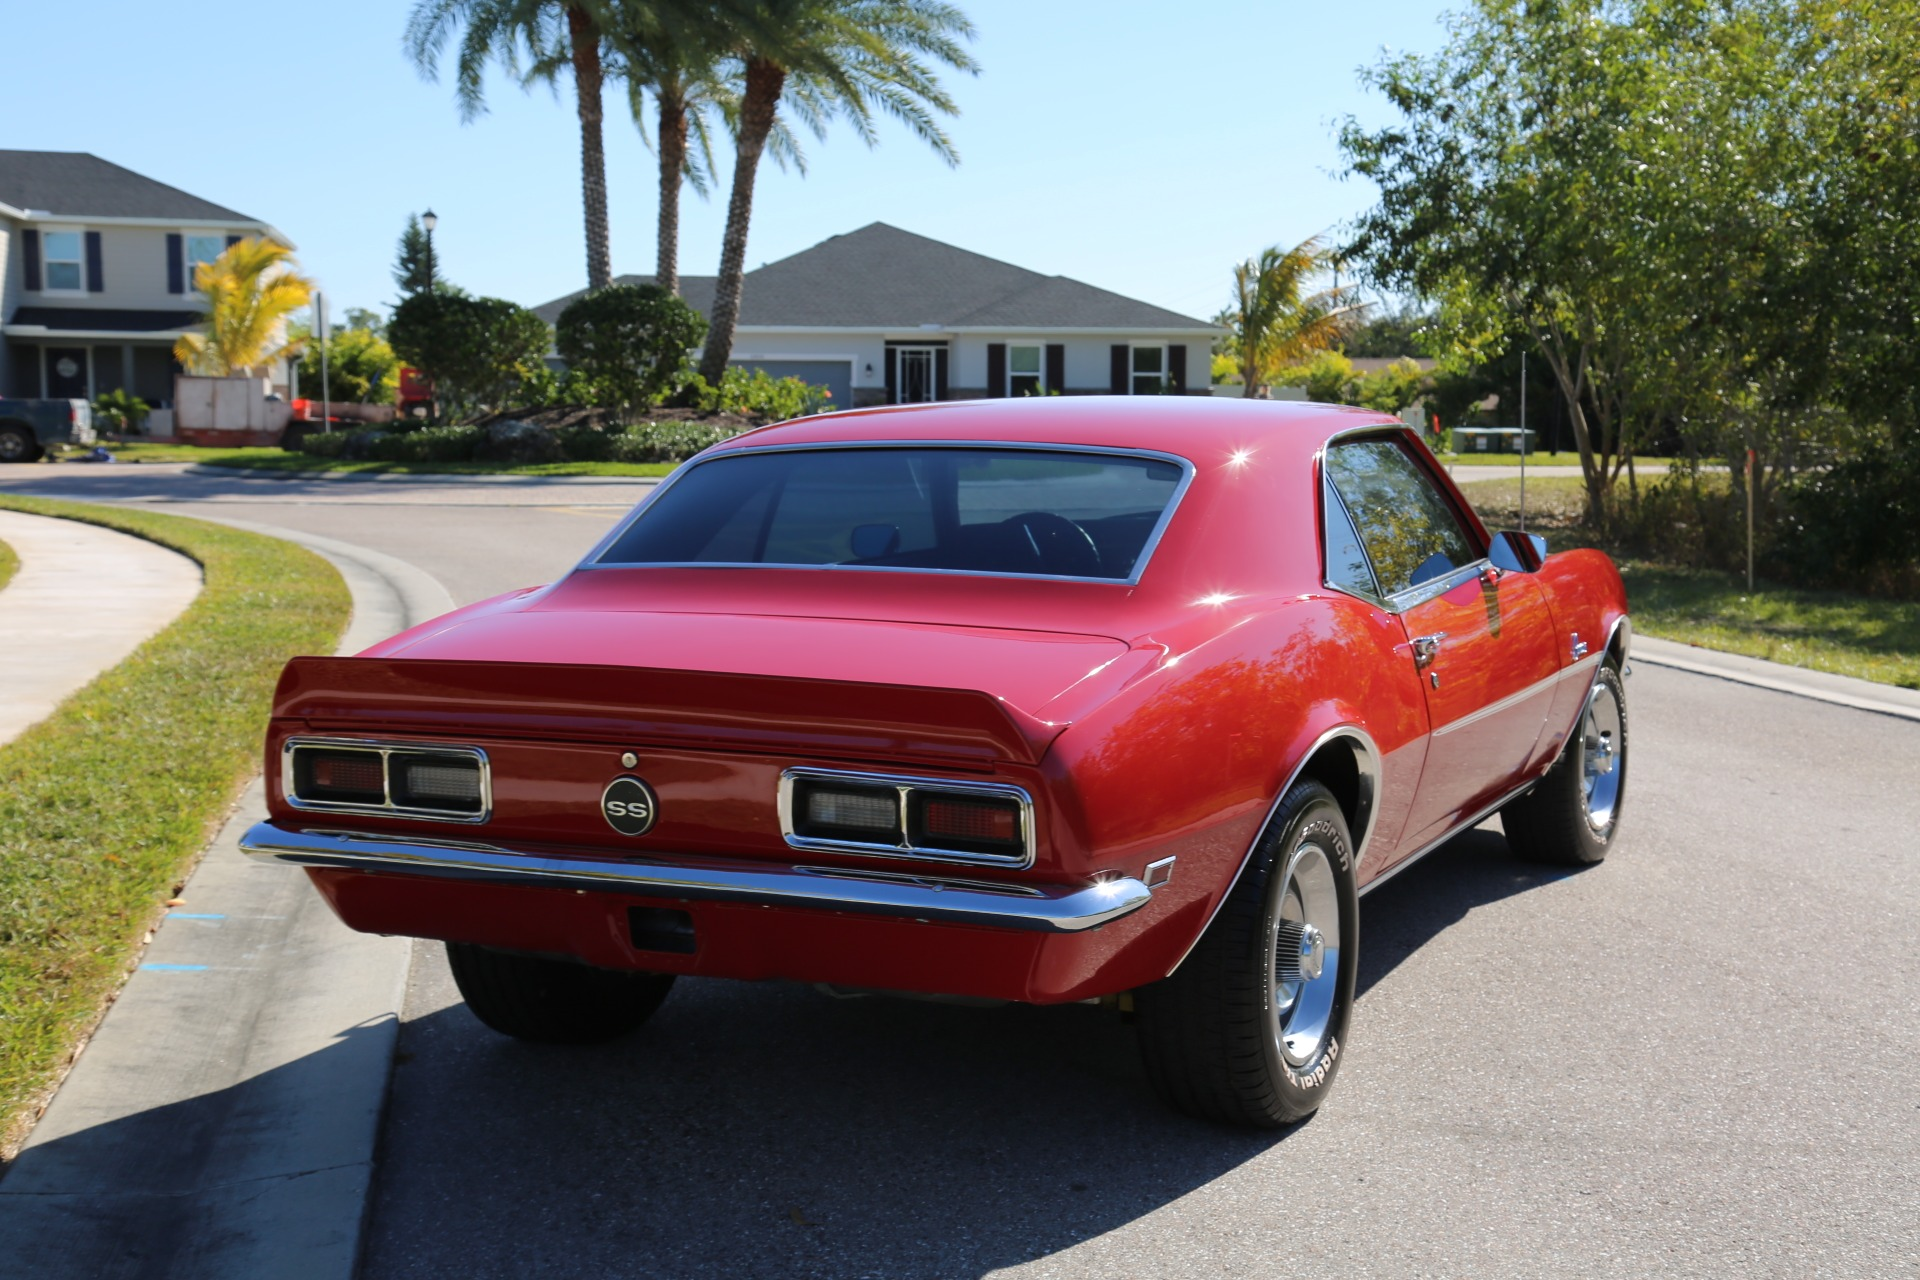 Used 1968 Chevrolet Camaro Camaro V8 350 Auto for sale Sold at Muscle Cars for Sale Inc. in Fort Myers FL 33912 8